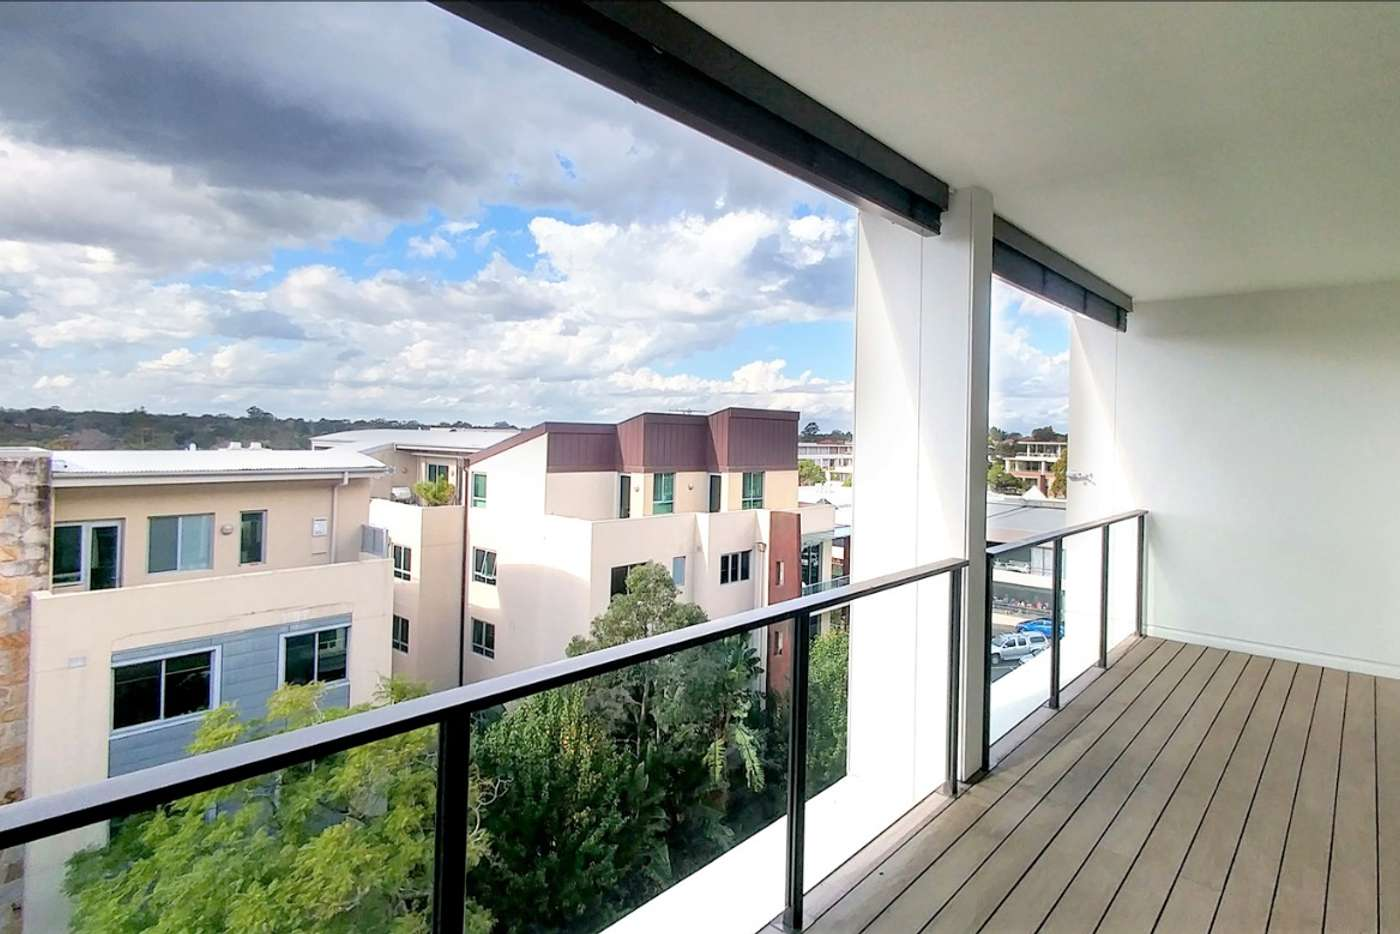 Main view of Homely apartment listing, 301/3 Havilah Ln, Lindfield NSW 2070